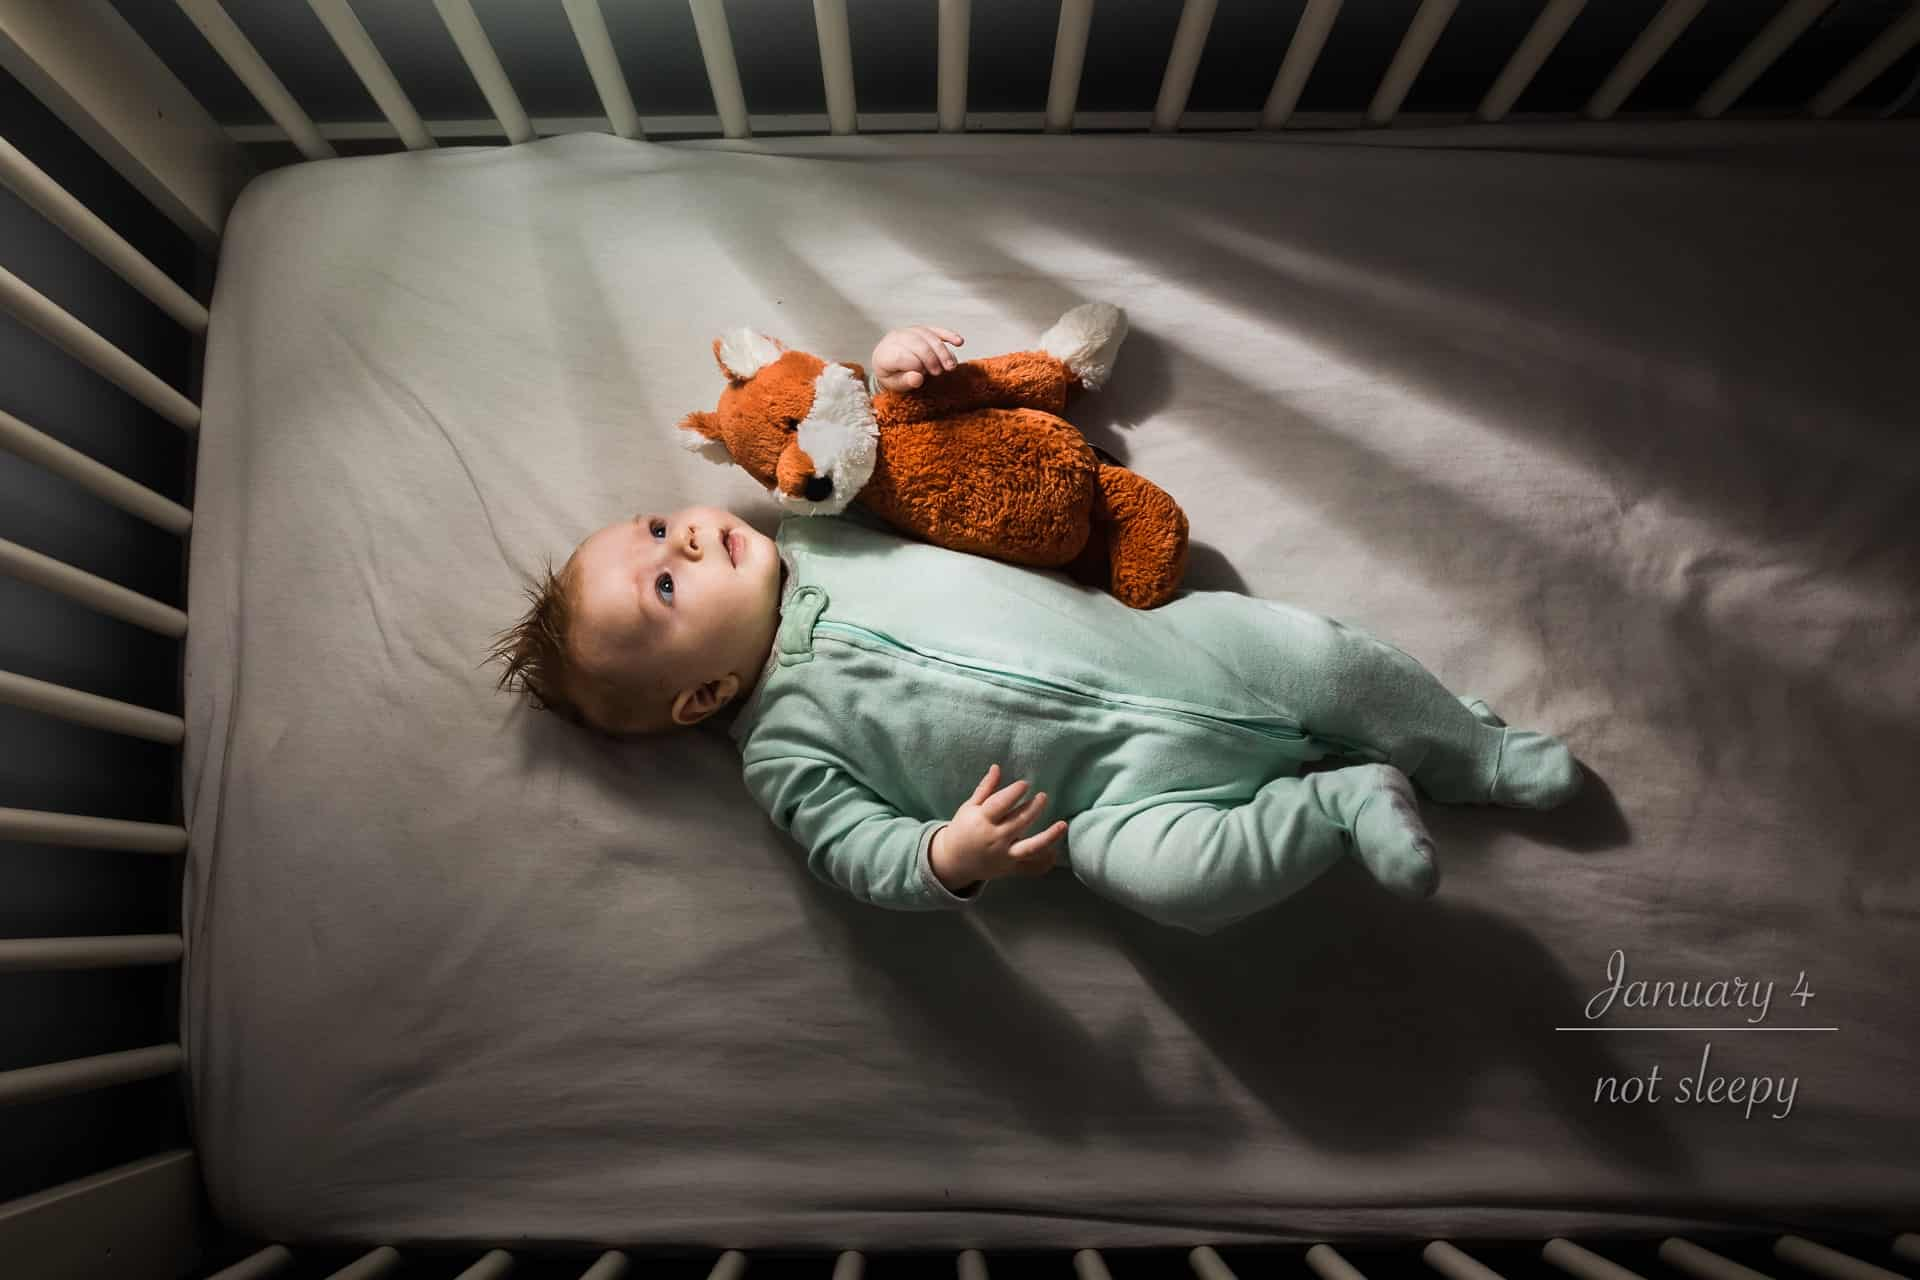 newborn baby with a stuffed fox laying in his crib gazing toward the window light